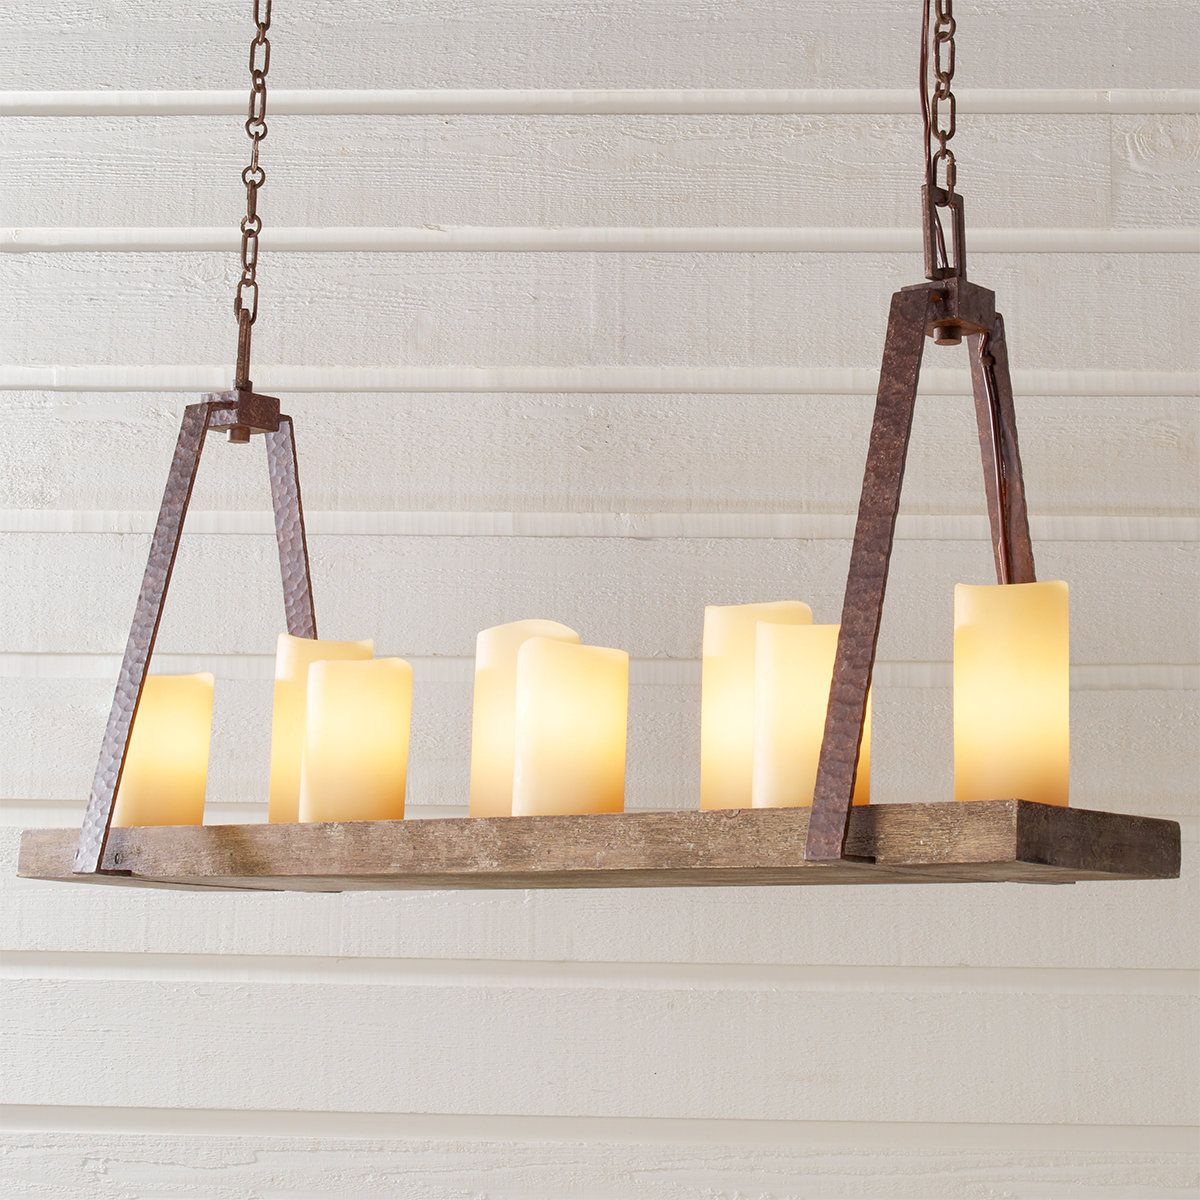 Rustic Plank Candle Island Chandelier In 2020 Faux Candle Chandelier Candle Light Chandelier Faux Candles